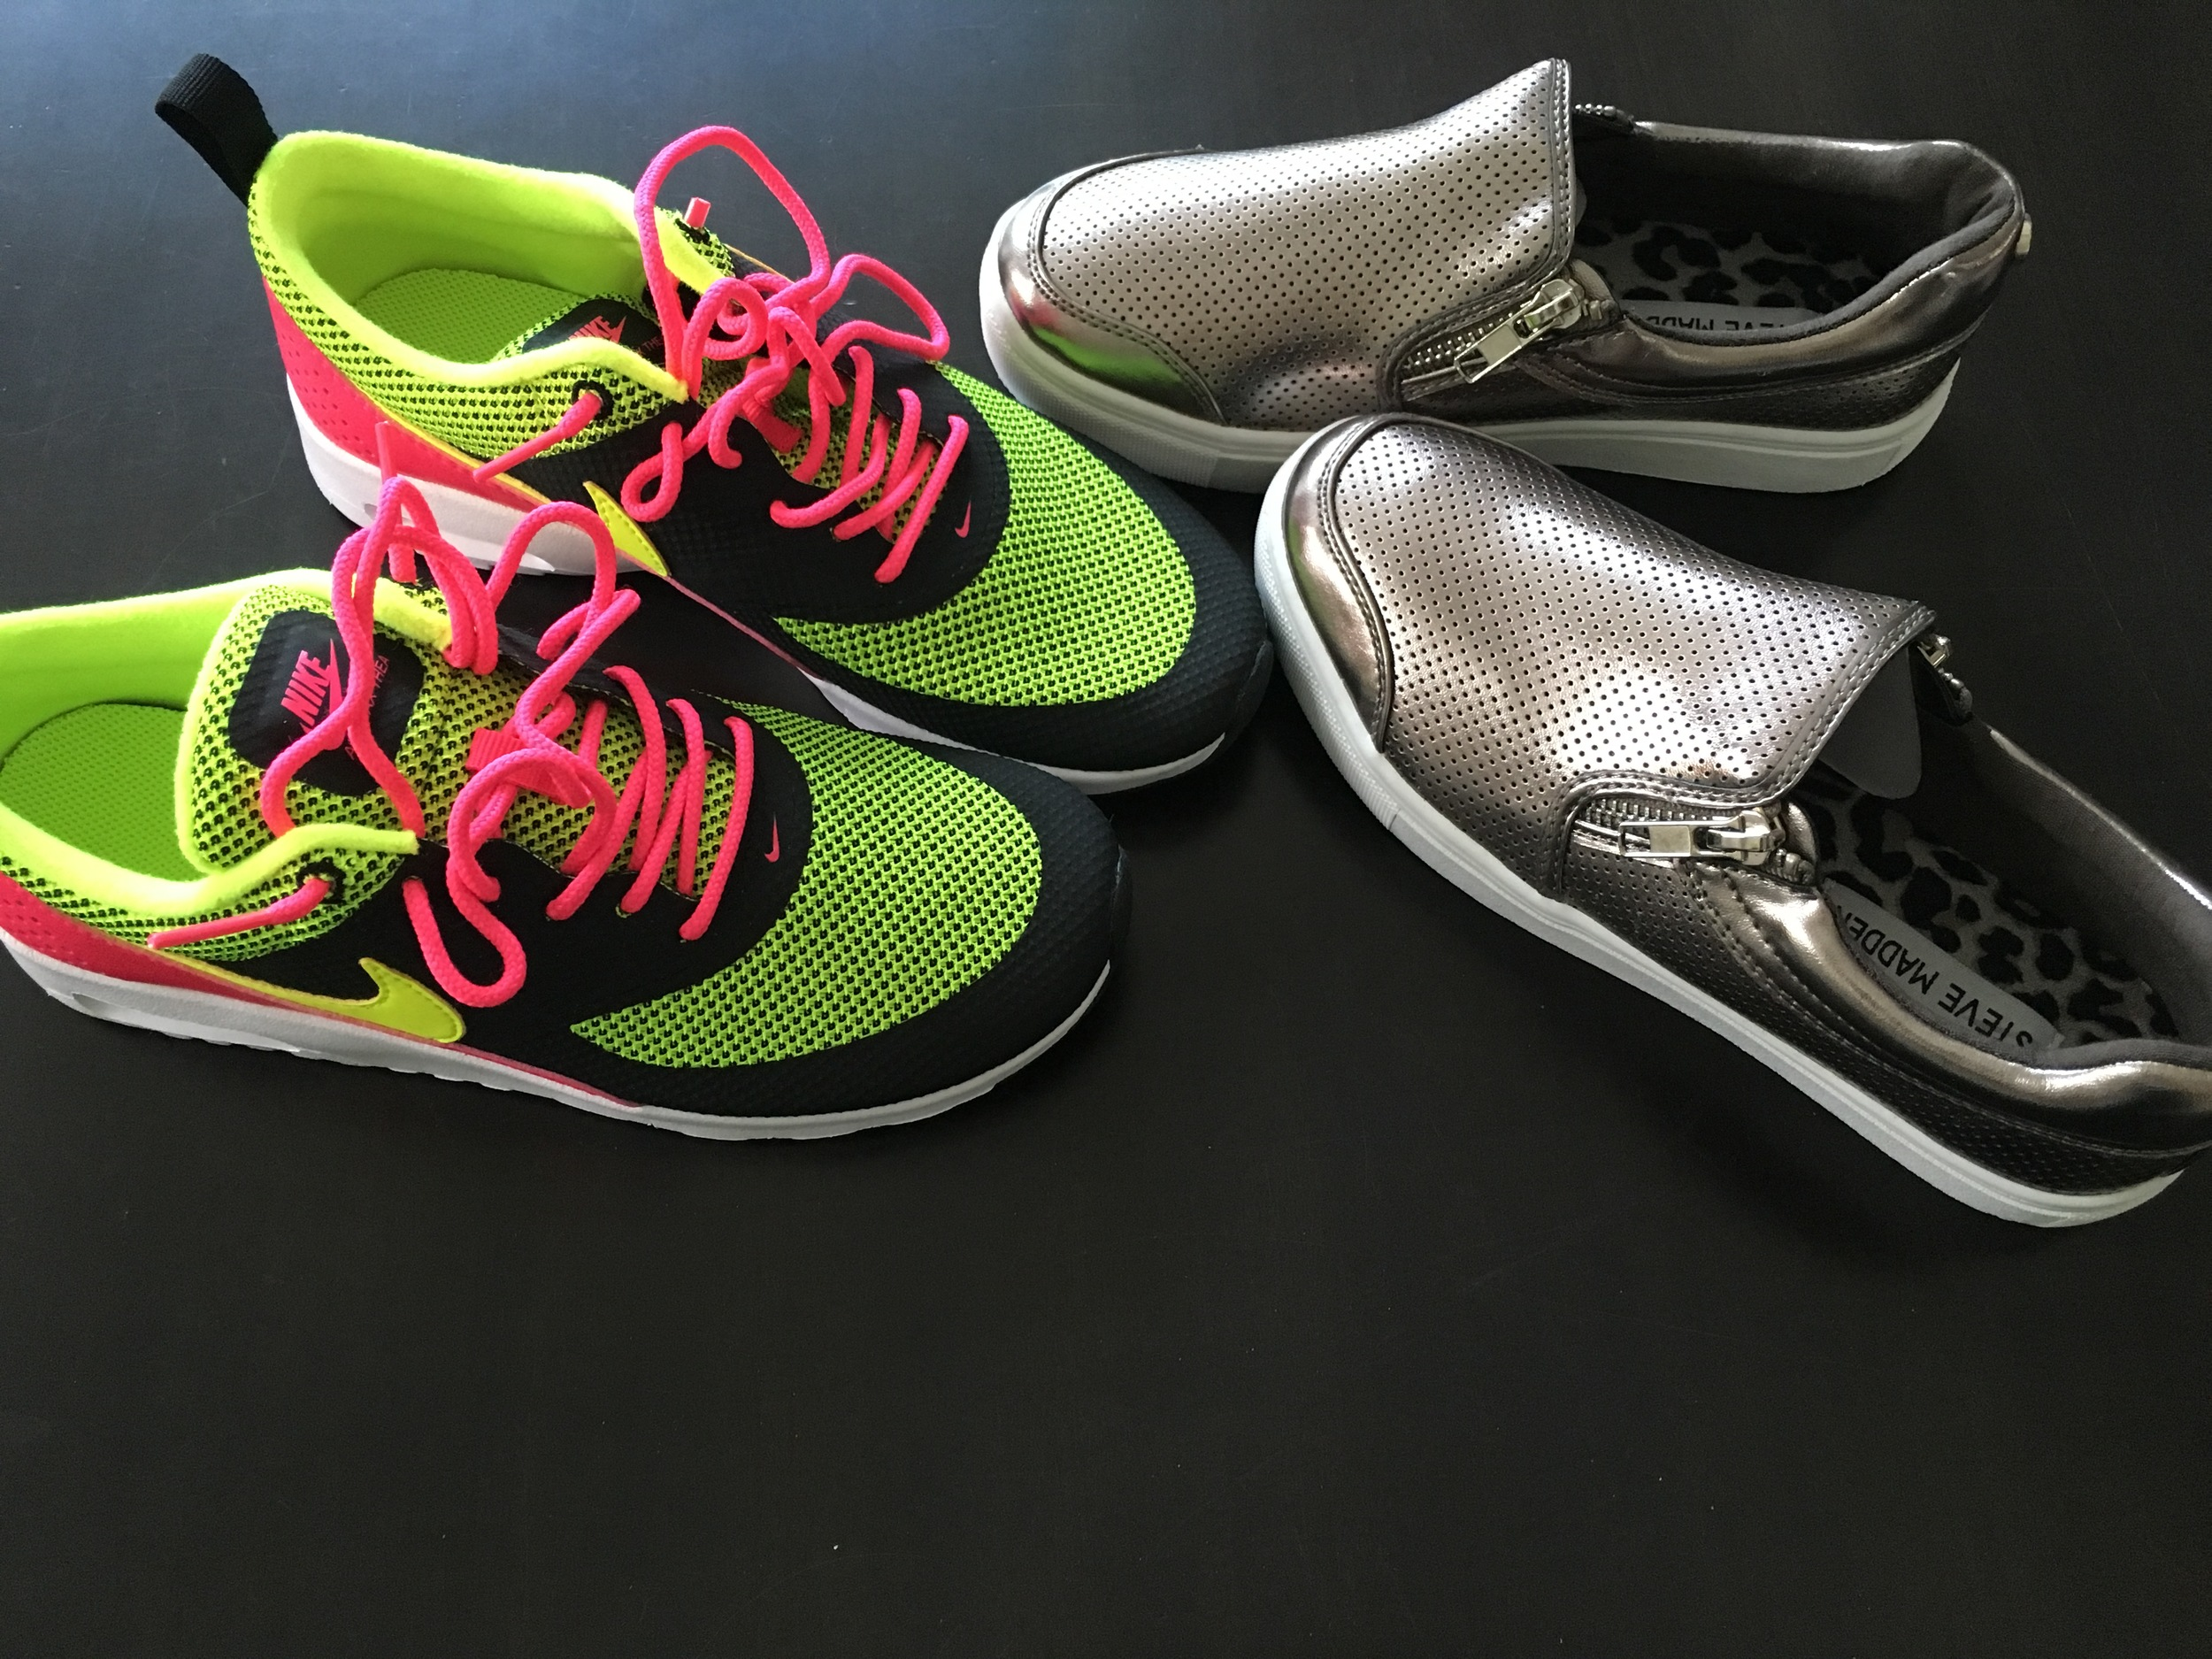 1 pair of tennis shoes for P.E. and the other pair for the rest of her wardrobe. We had to order her  back pack  off of Amazon because Target would have been too easy for me.